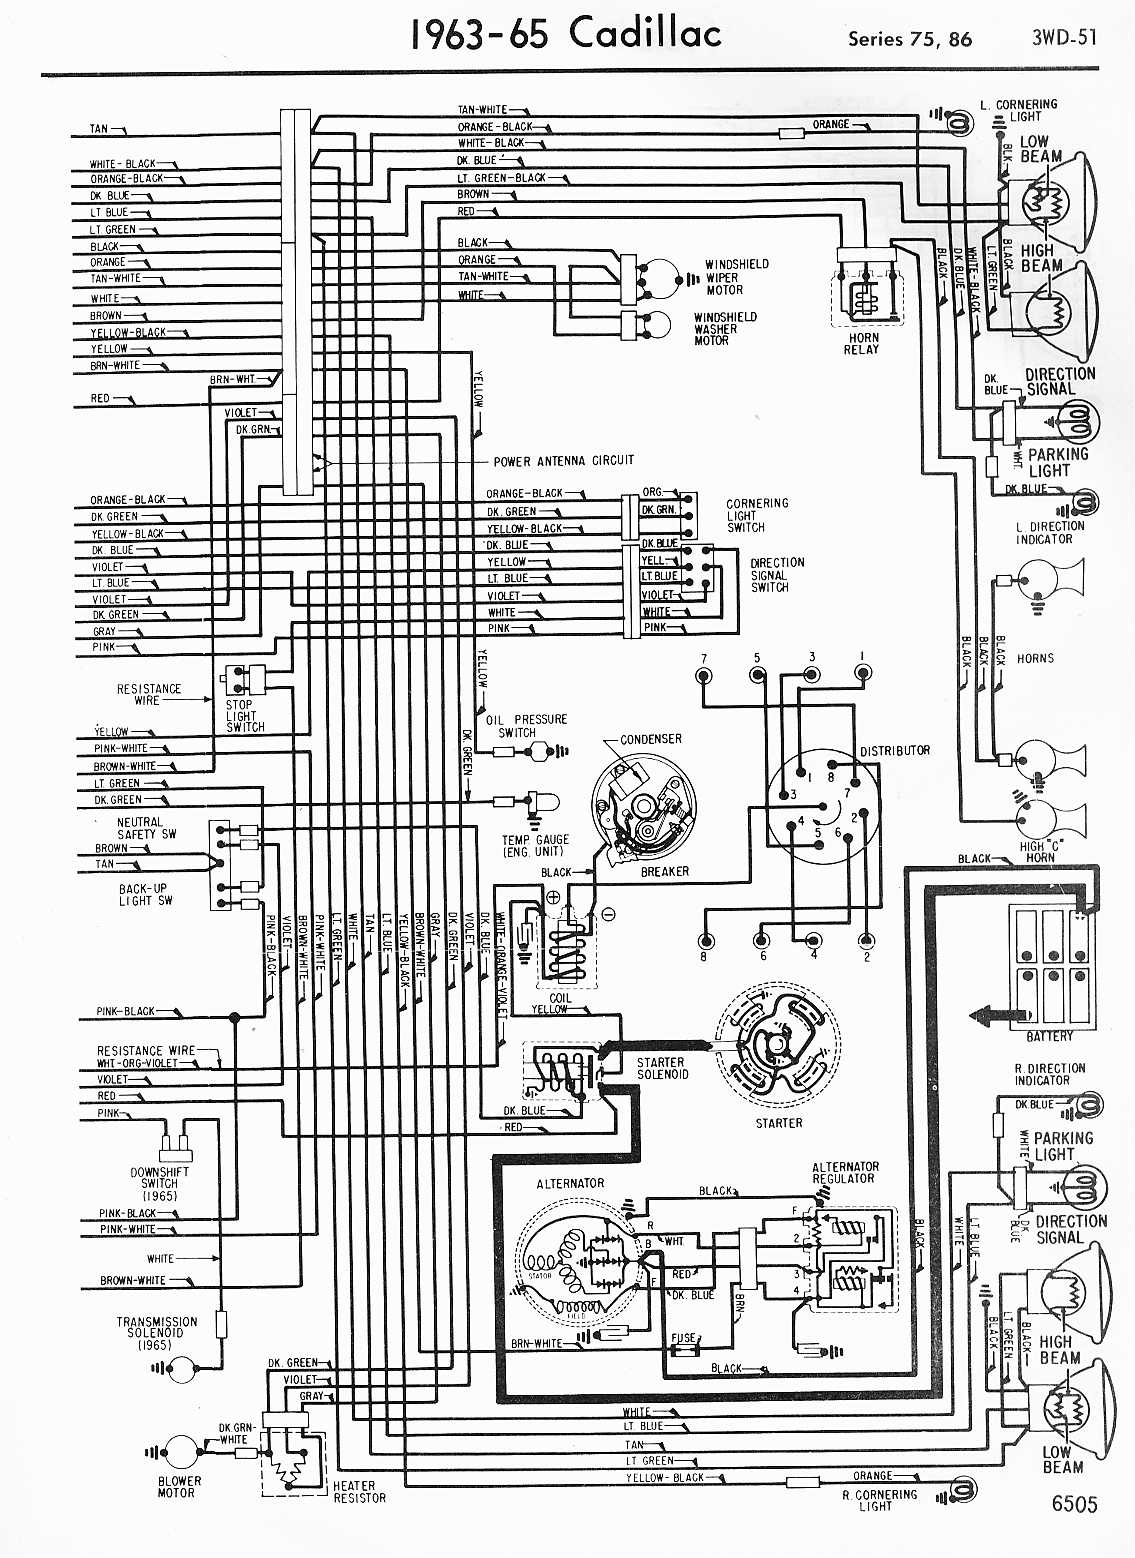 1957 Cadillac Wiring Harness The Portal And Forum Of Diagram 1954 Diagrams 1965 Rh Oldcarmanualproject Com 1960 1962